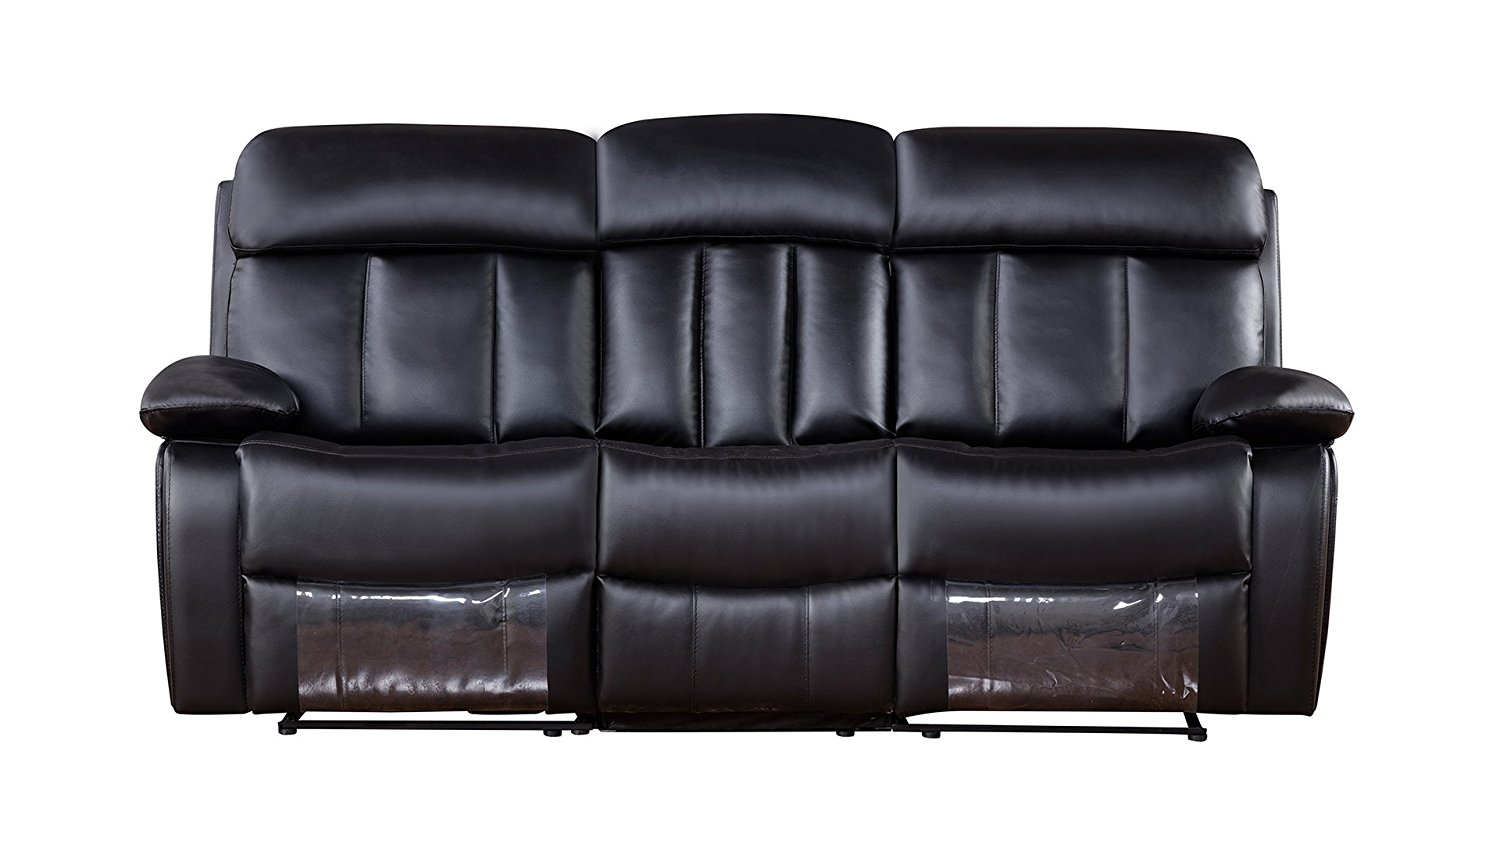 American Eagle Furniture Dunbar Collection Leather Reclining Sofa with Pillow Top Armrests, Black